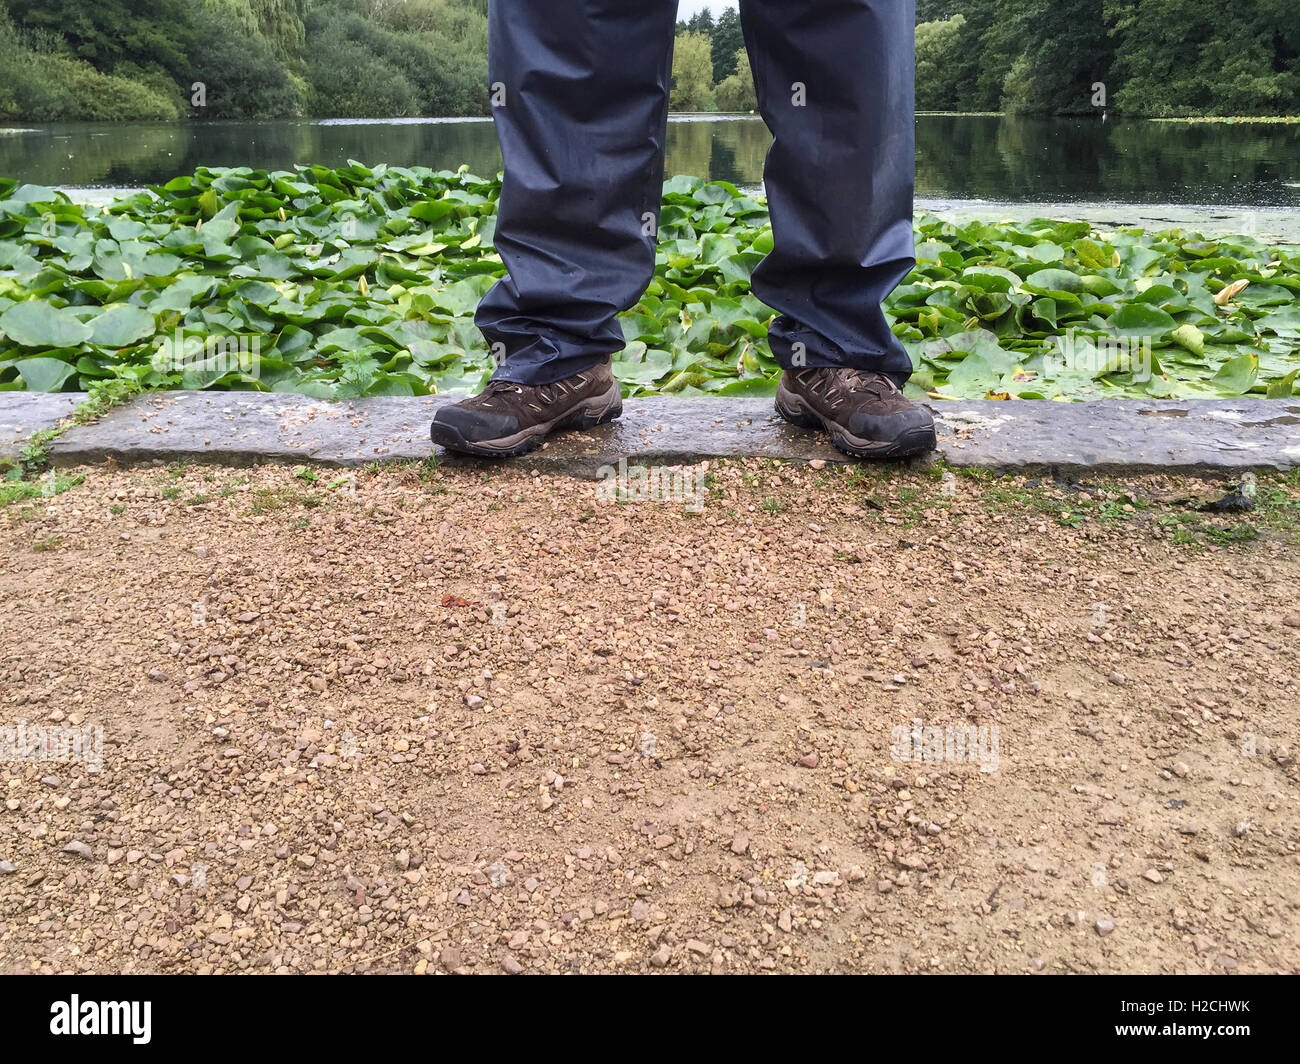 Man's legs wearing waterproof trousers and walking boots. At Newstead Abbey, Newstead, Notting - Stock Image